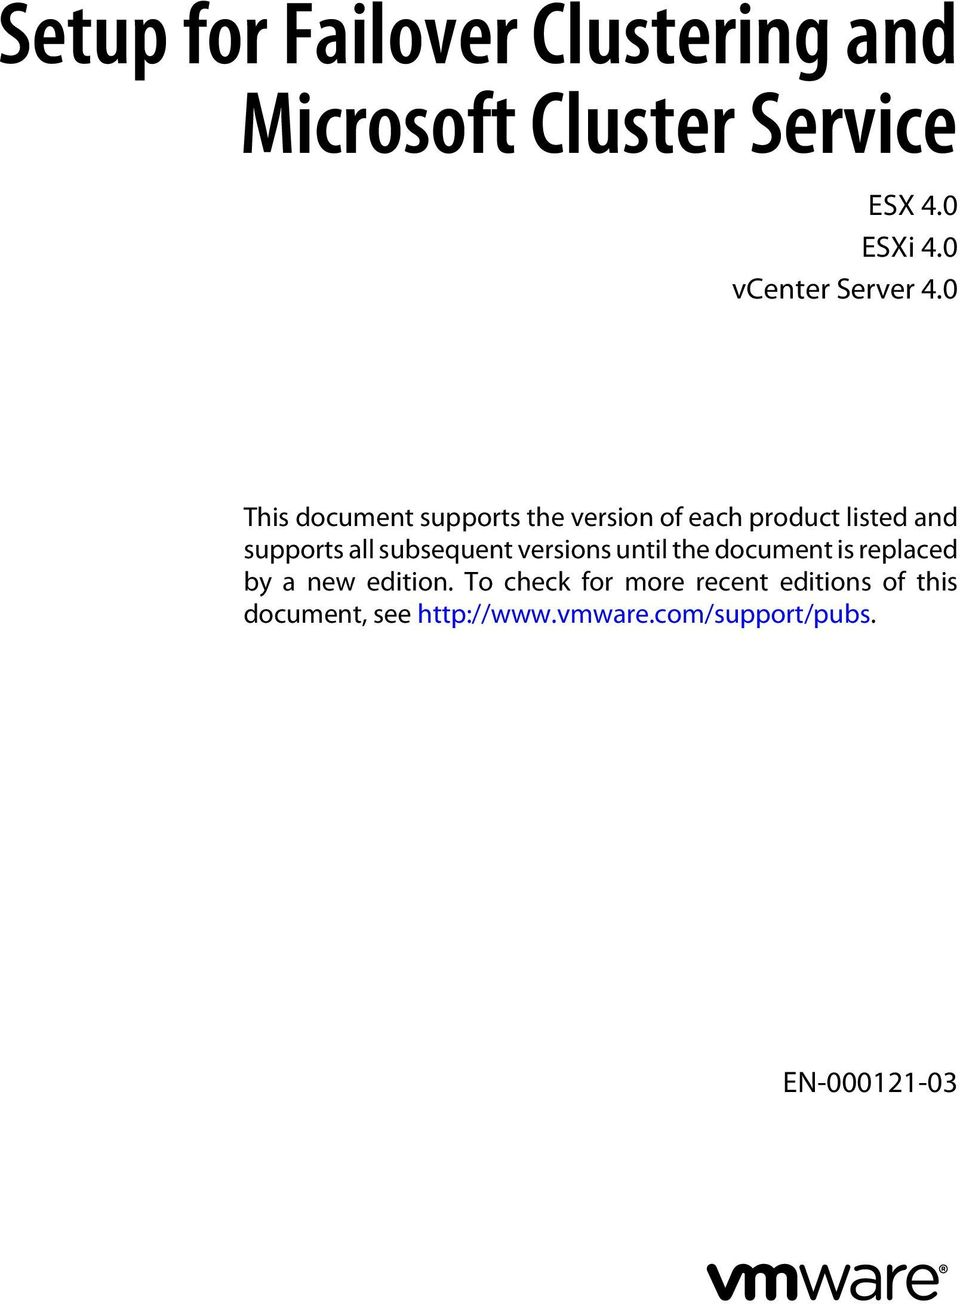 0 This document supports the version of each product listed and supports all